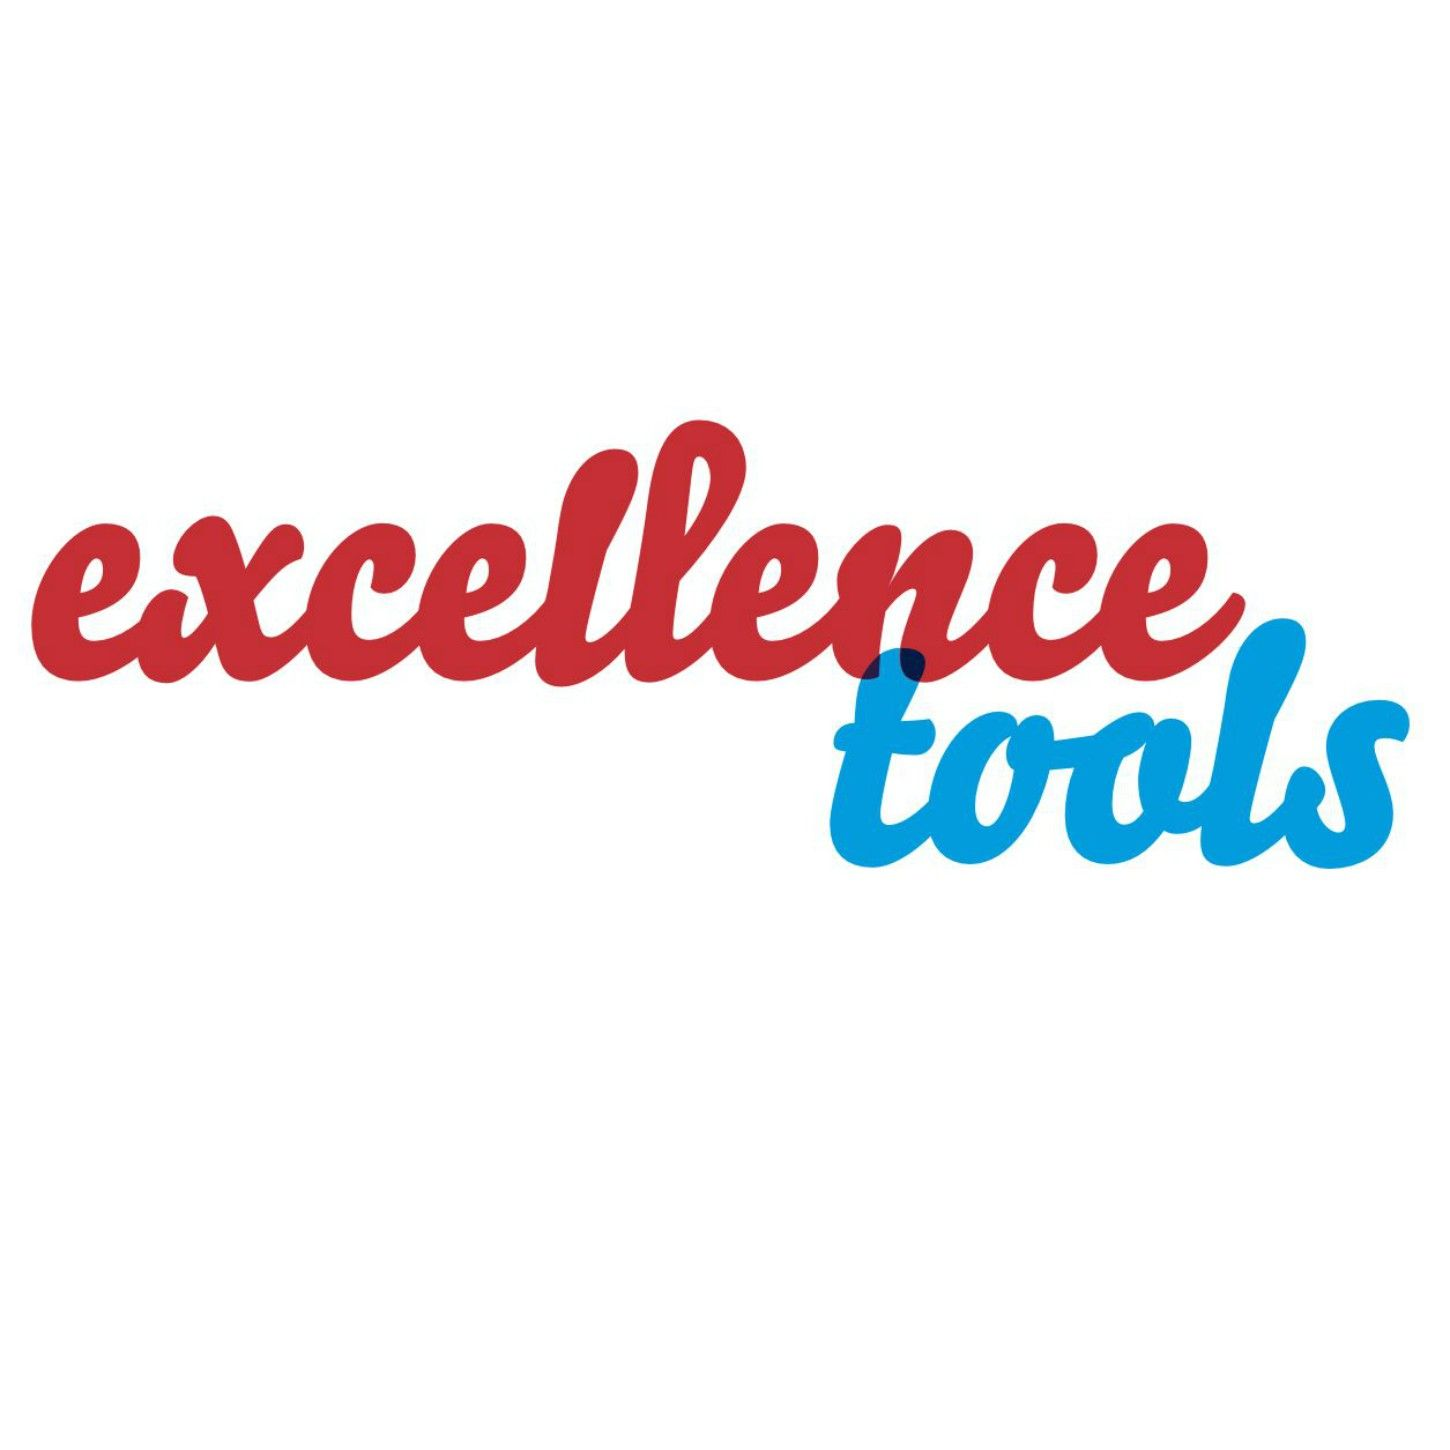 Excellence Tools Podcast: Small Business Insights